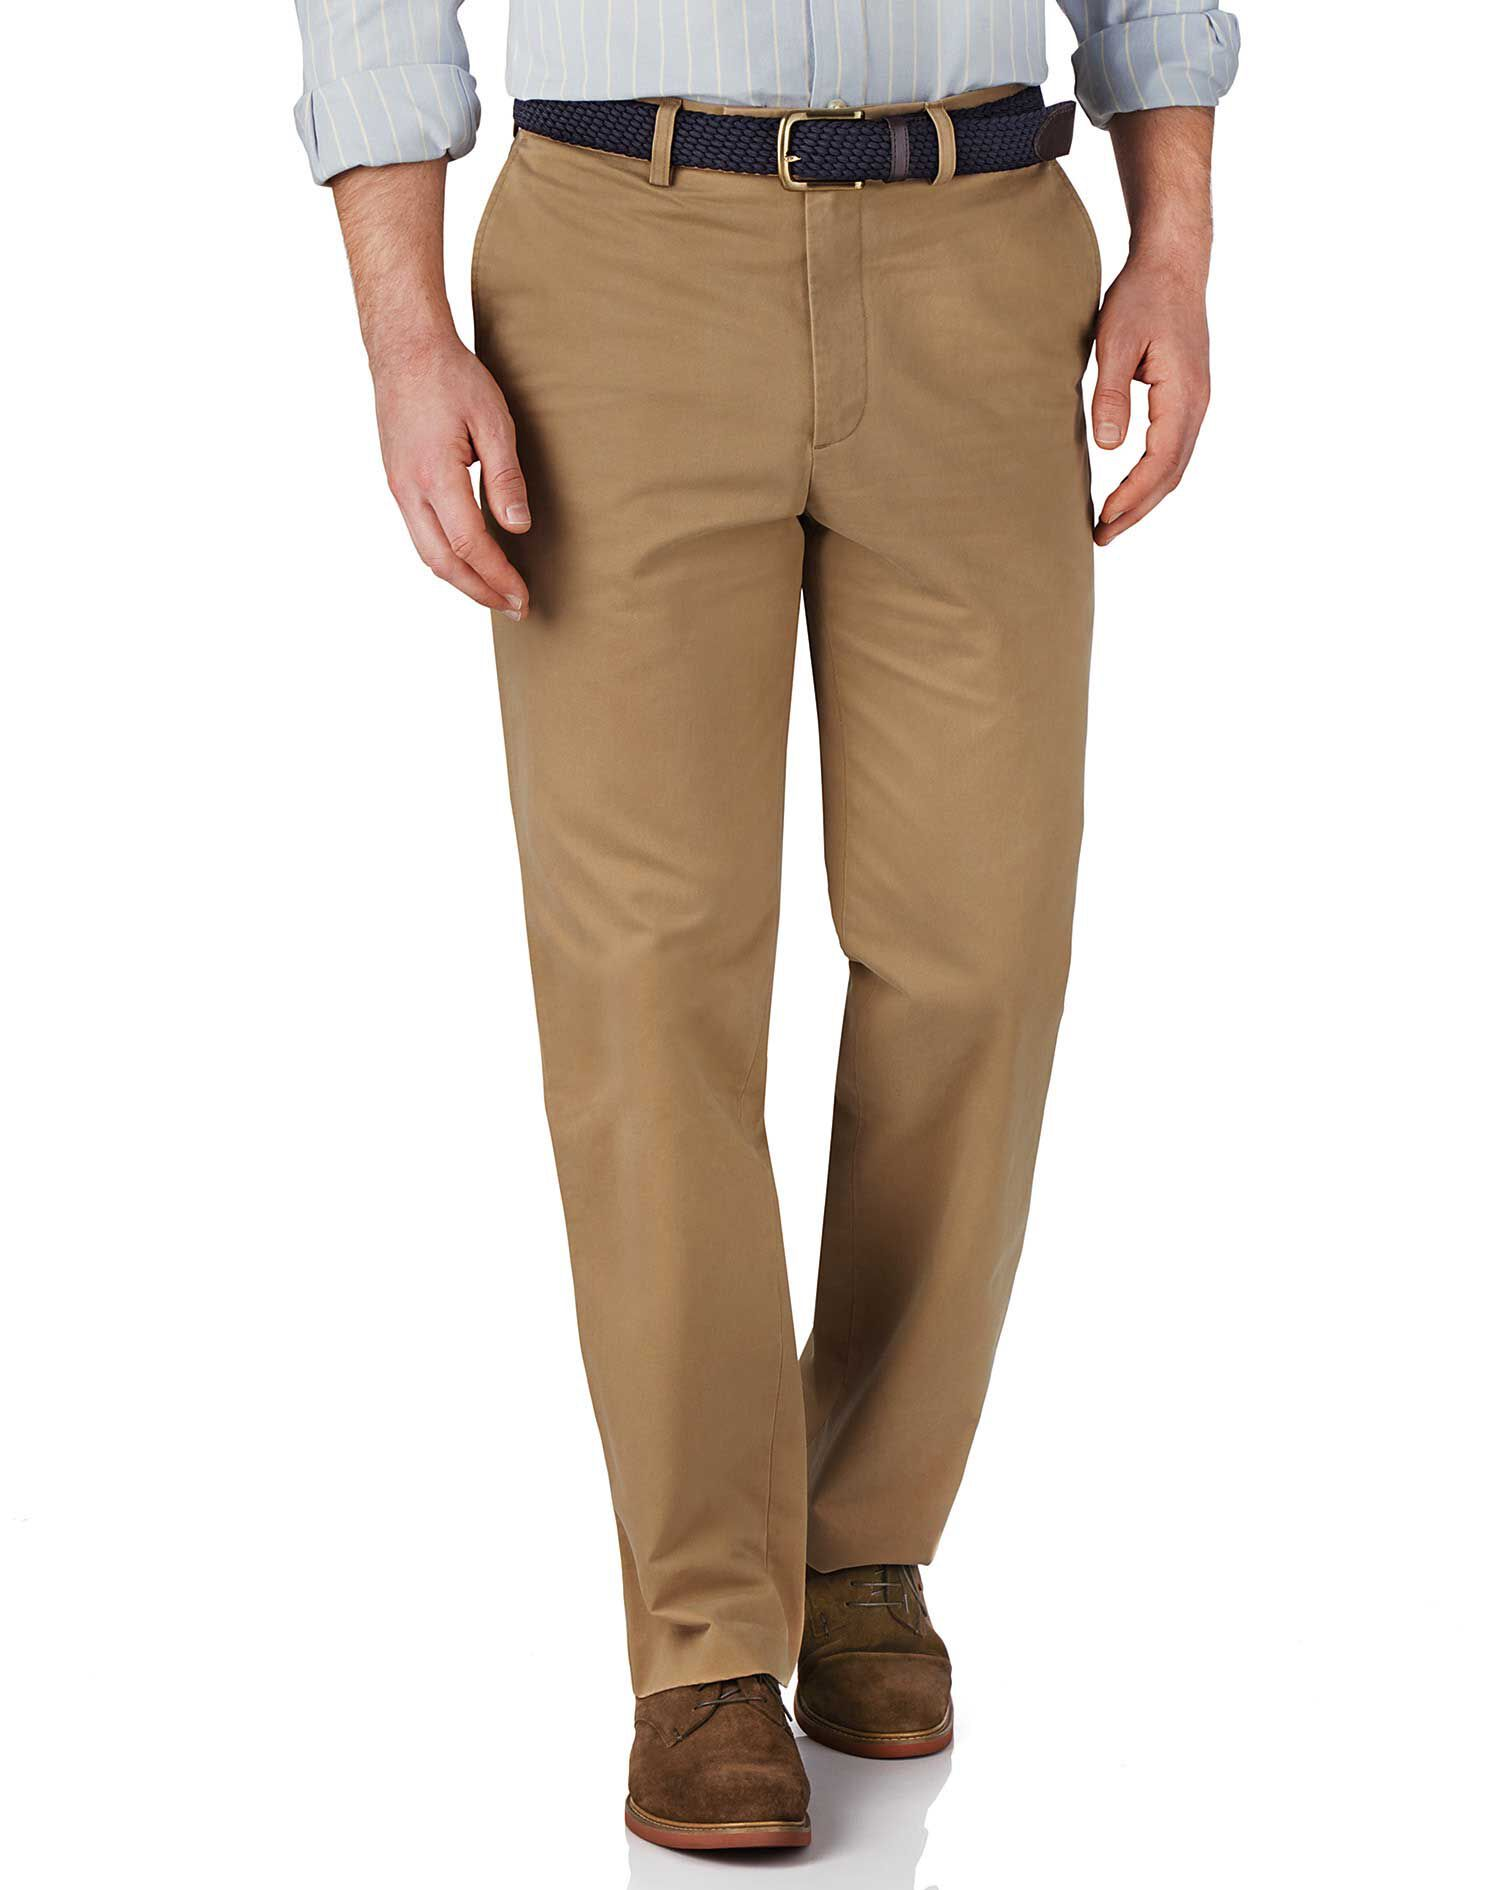 Tan Classic Fit Flat Front Weekend Cotton Chino Trousers Size W32 L38 by Charles Tyrwhitt